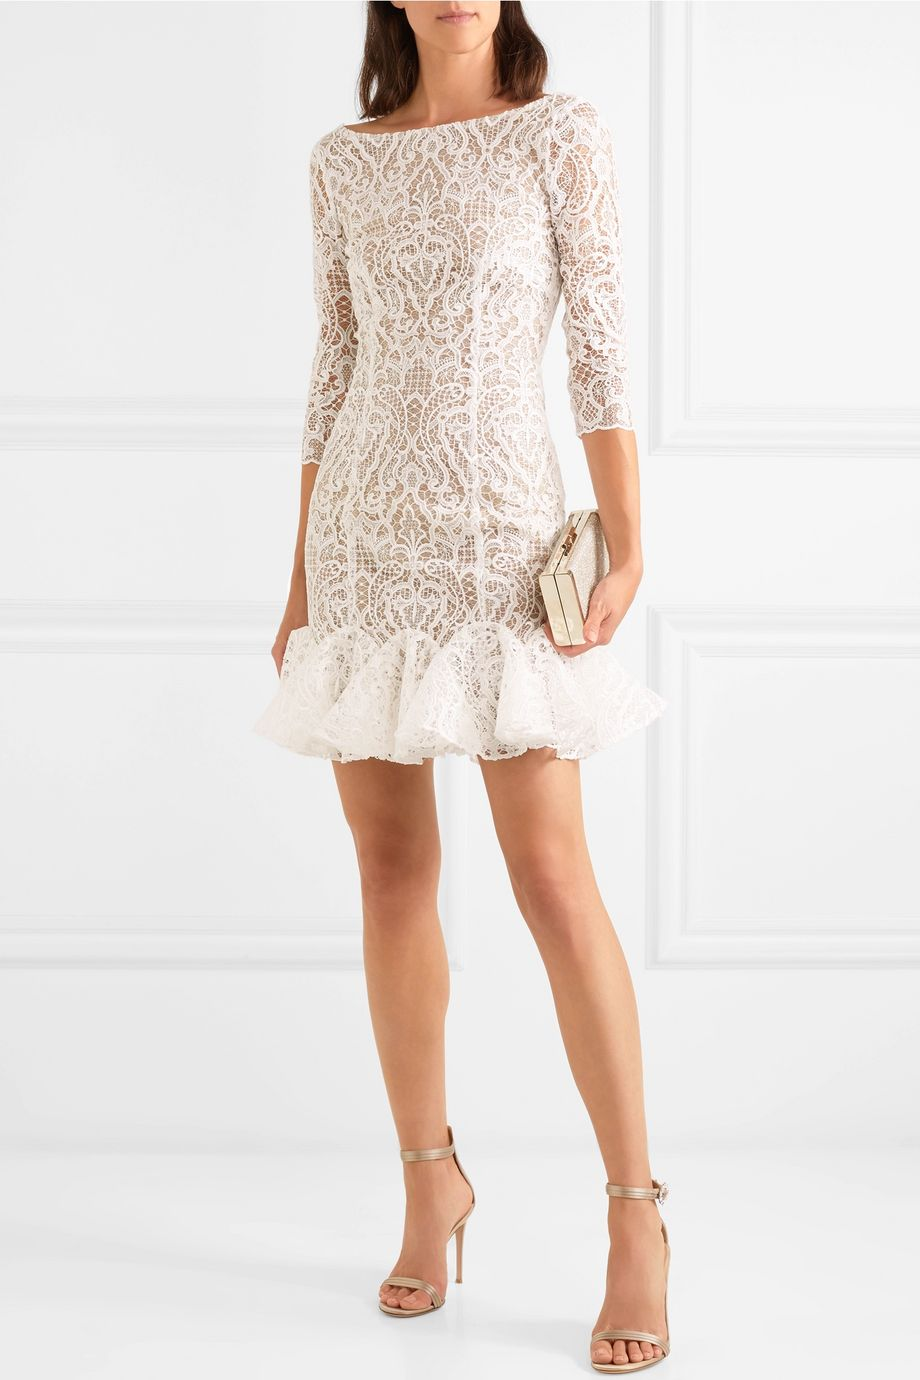 Rime Arodaky Gillian ruffled lace mini dress